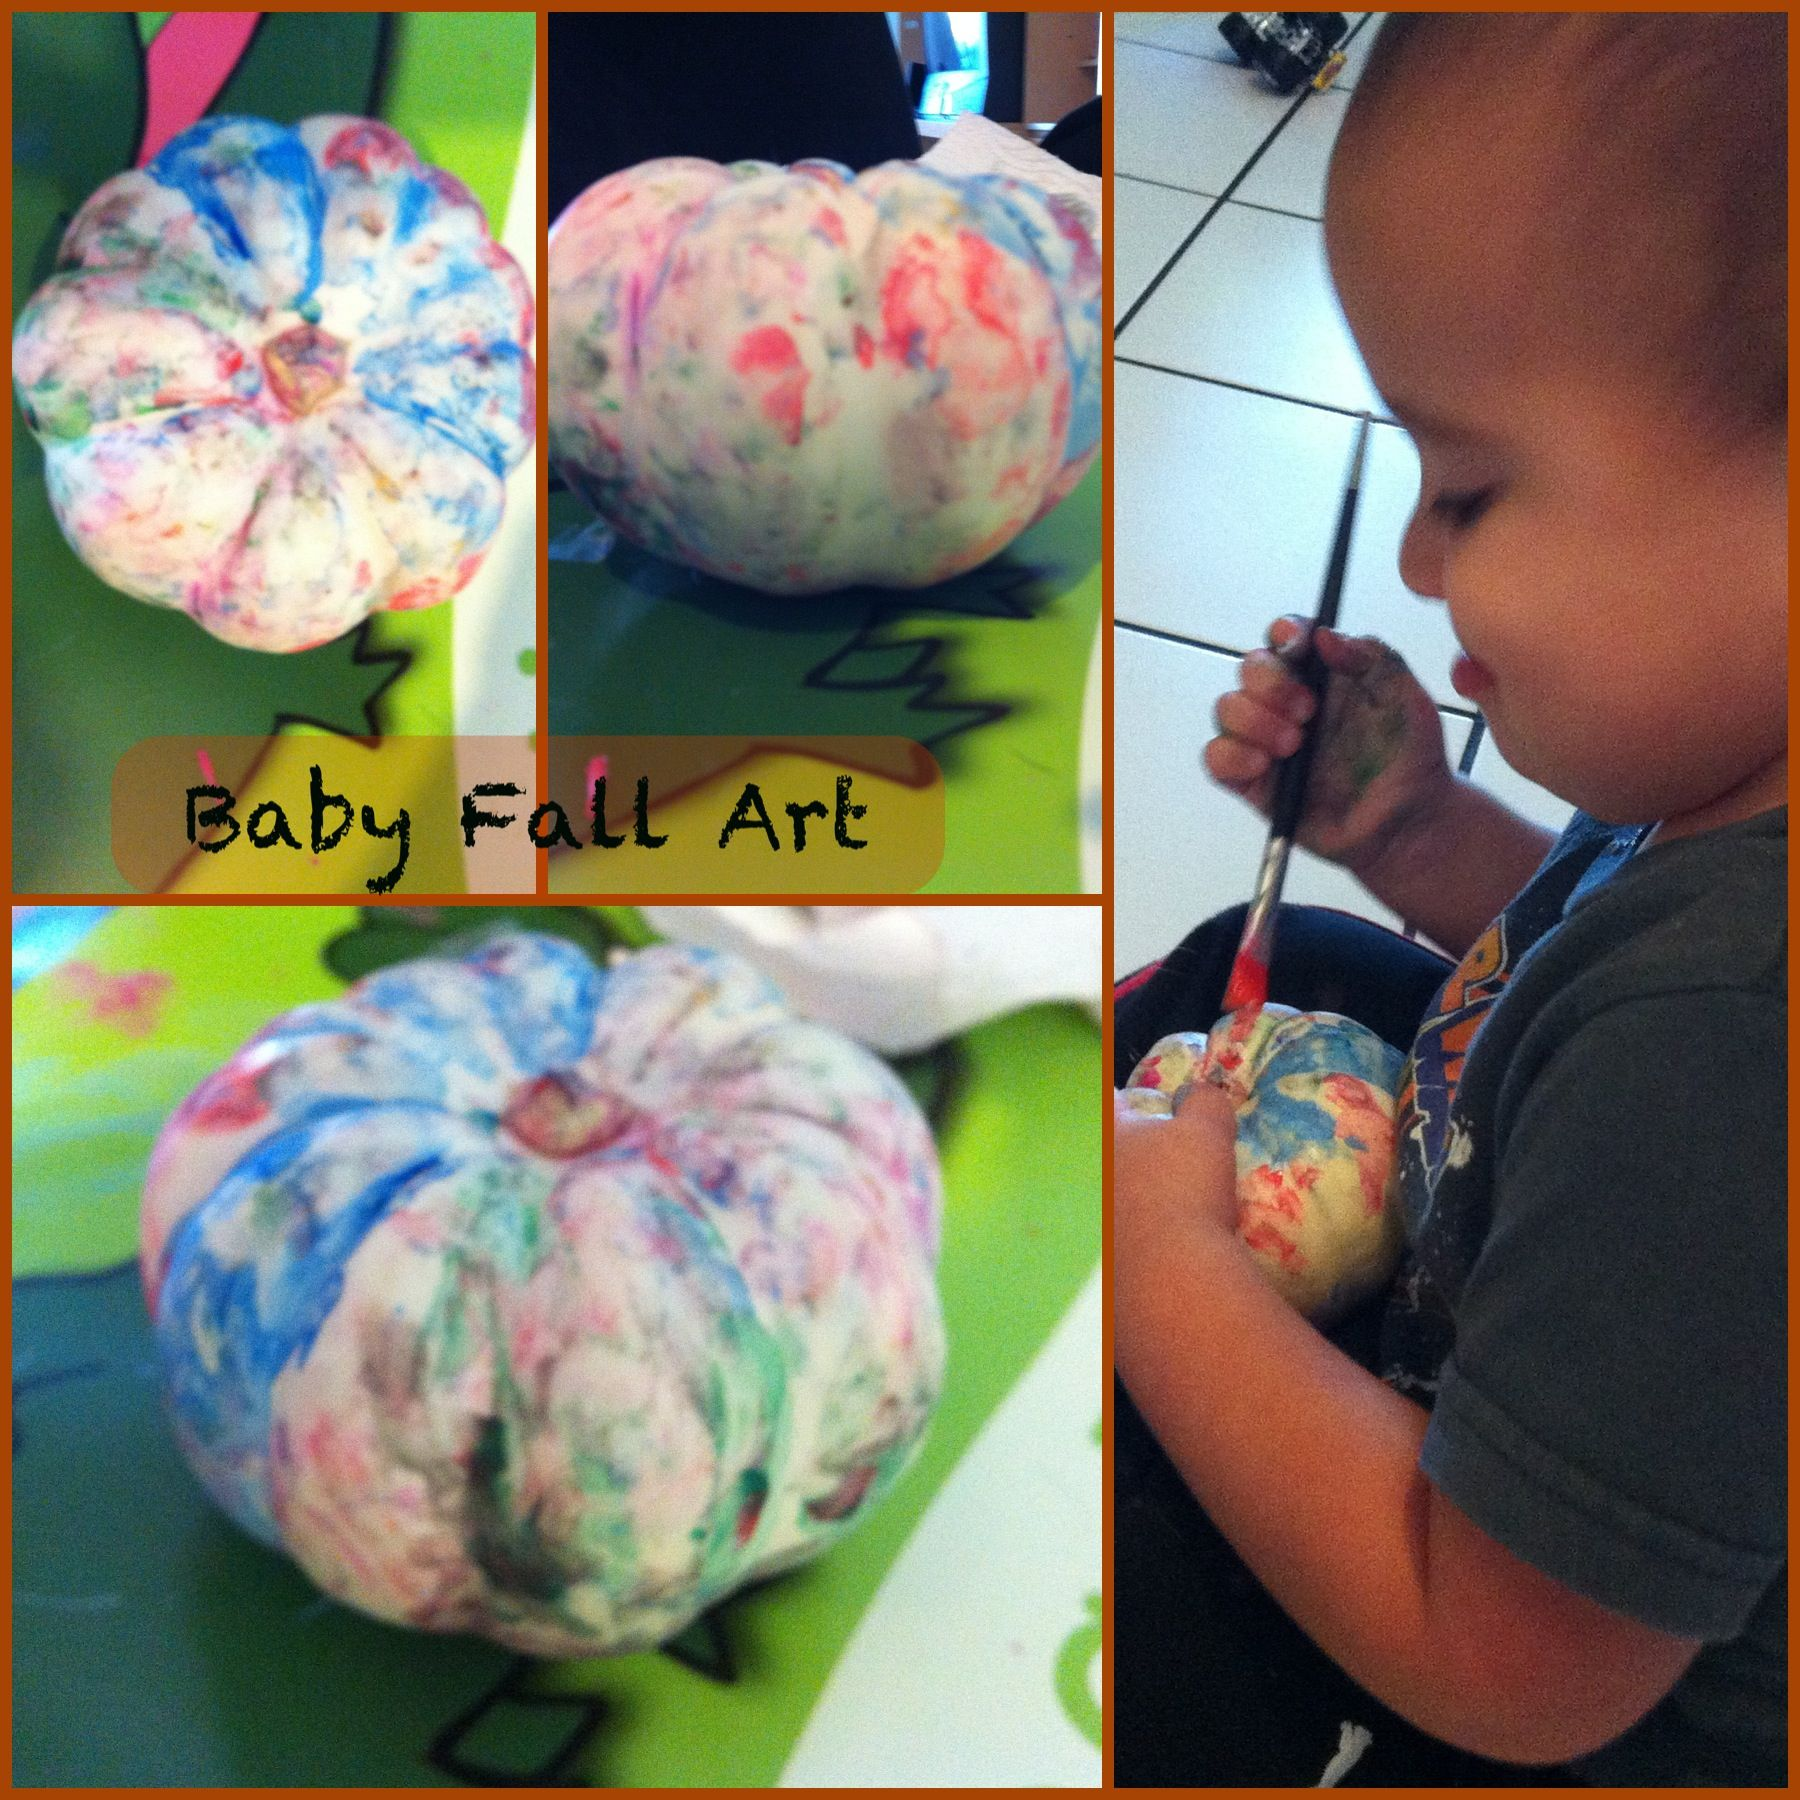 Creative Arts Activity For Toddlers Preschoolers Painting Pumpkins Squash Physical Intellectual